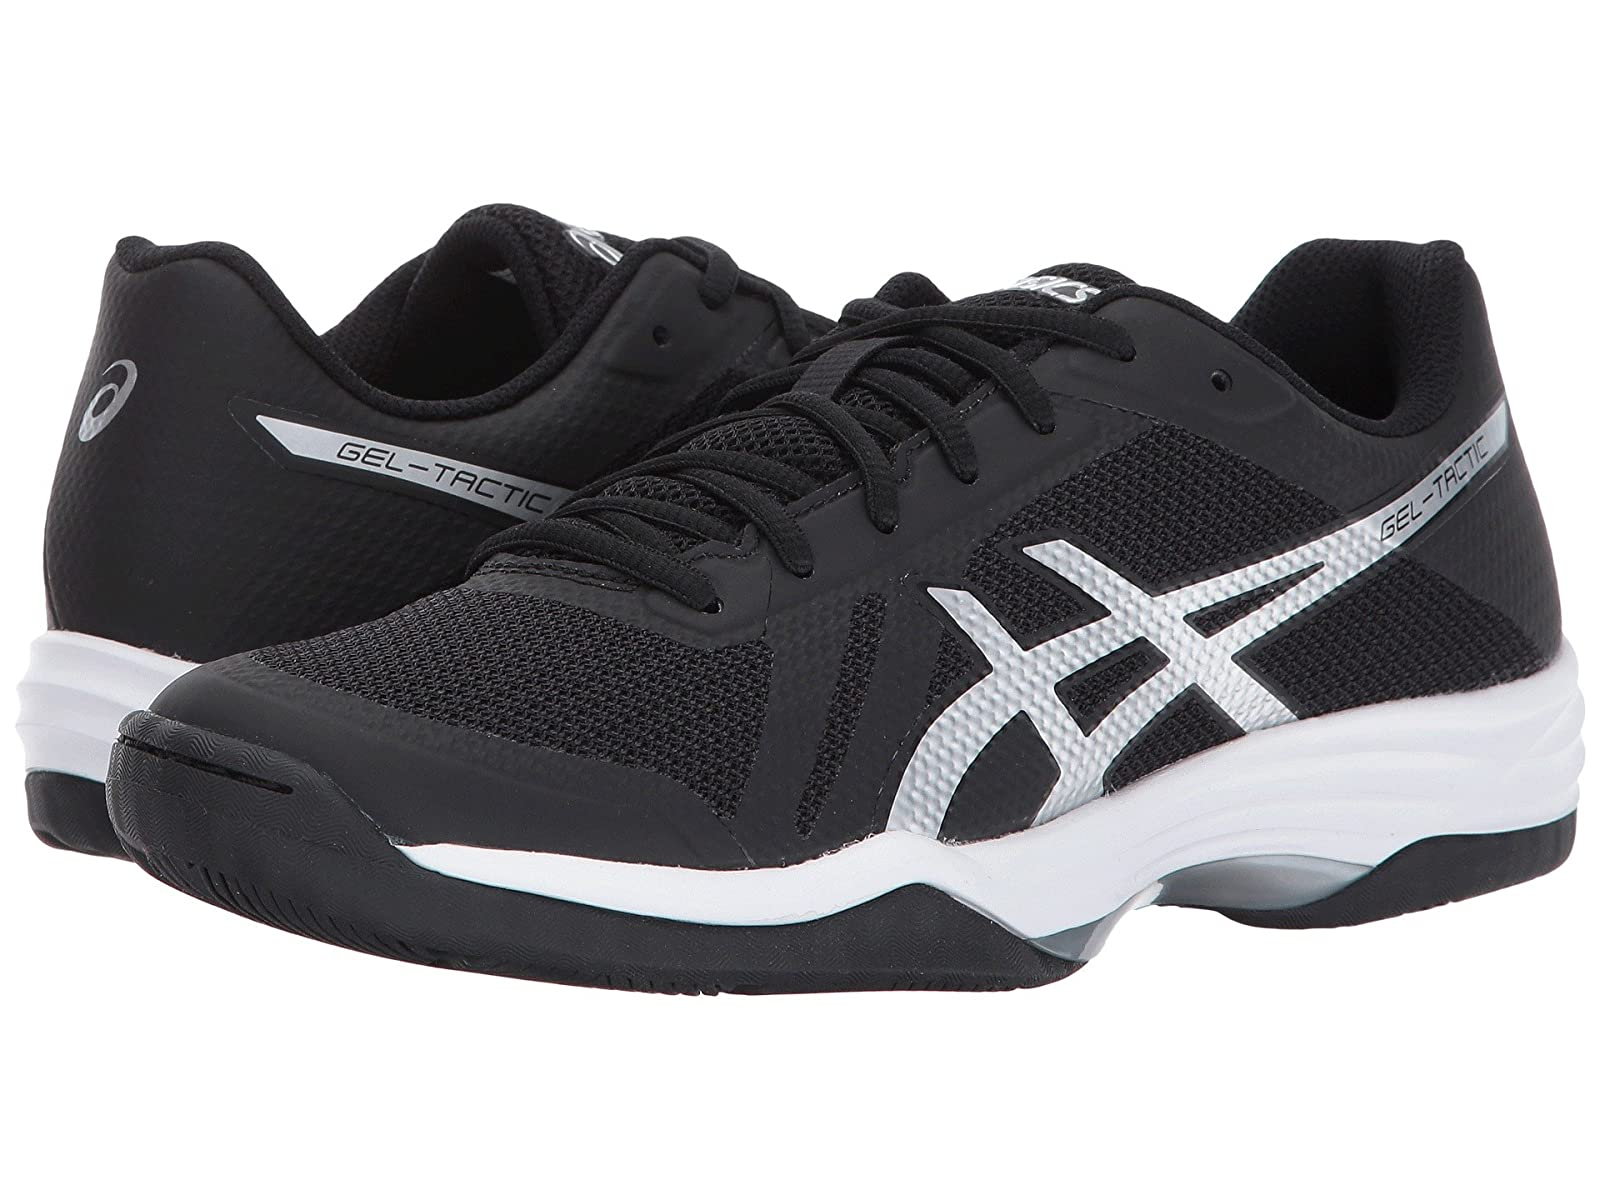 ASICS Gel-Tactic 2Atmospheric grades have affordable shoes